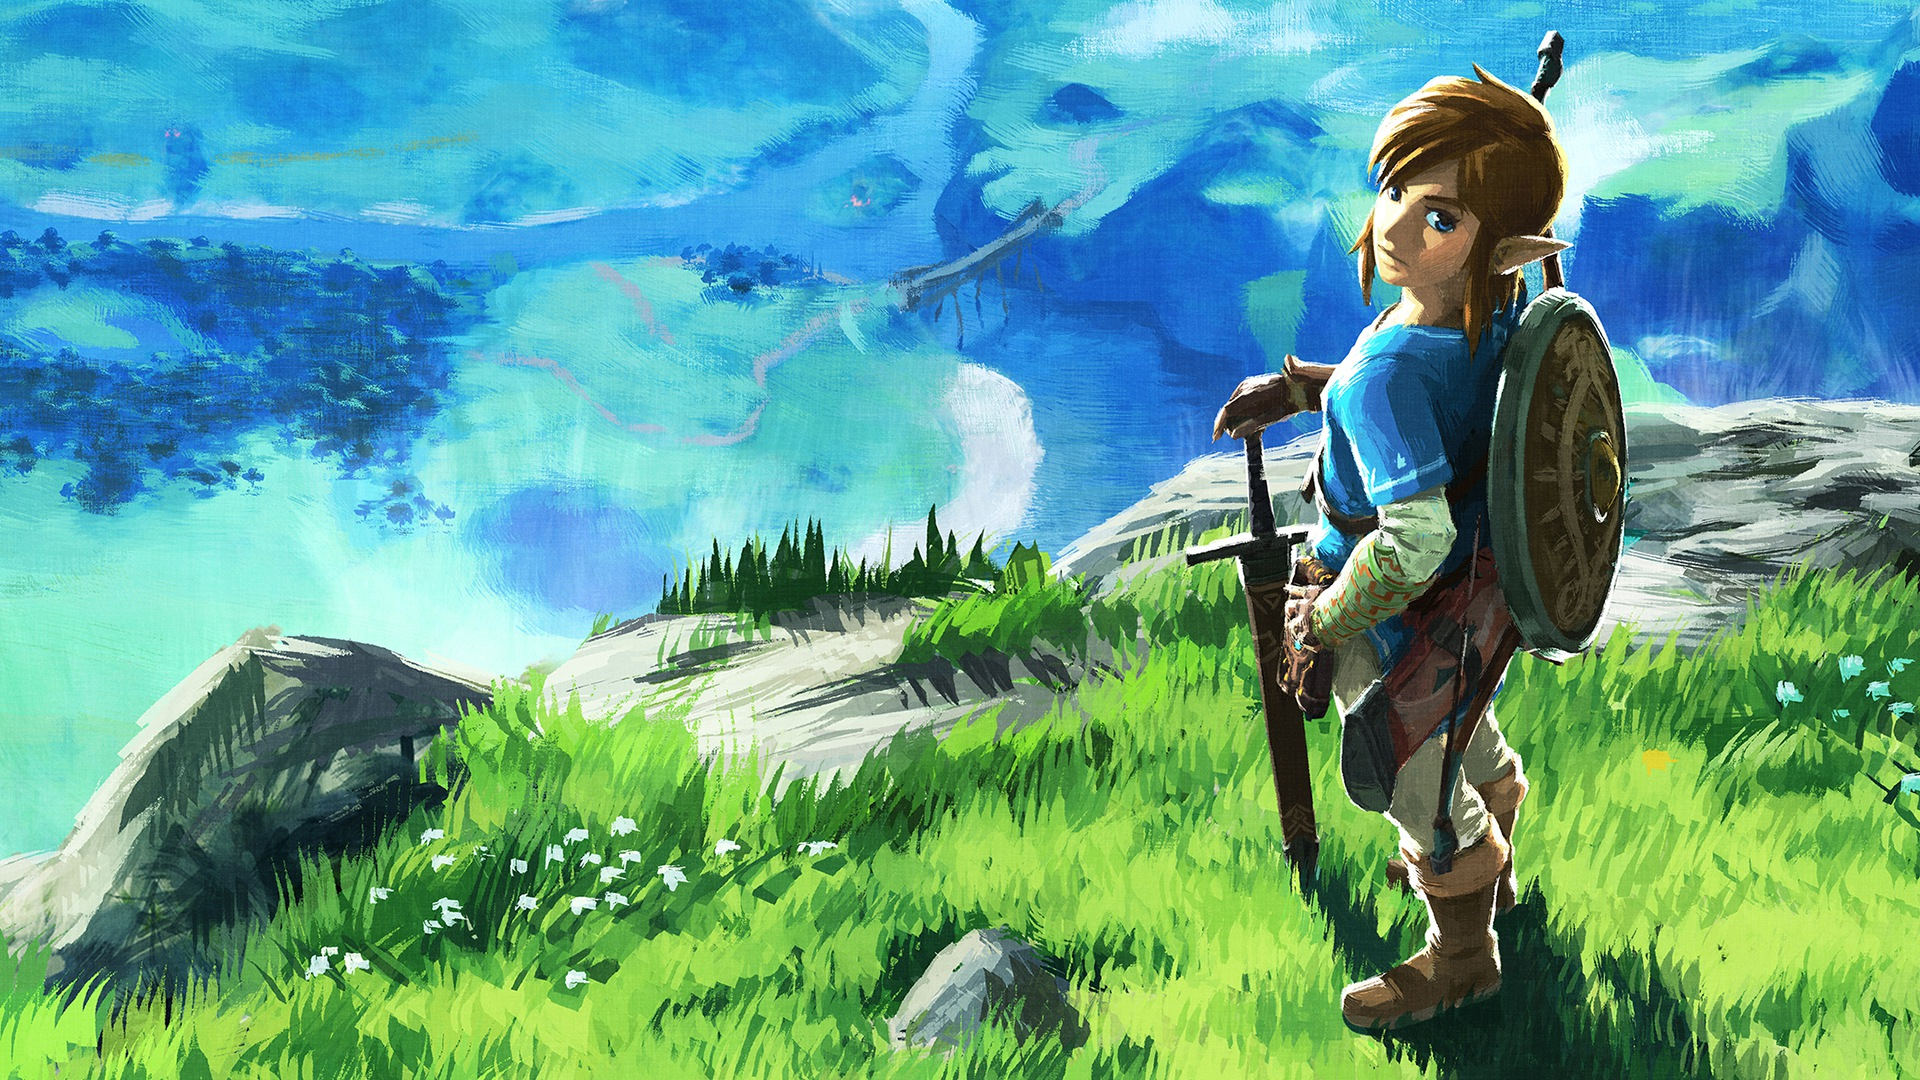 Review: The Legend of Zelda: Breath of the Wild – Nintendos Blaupause